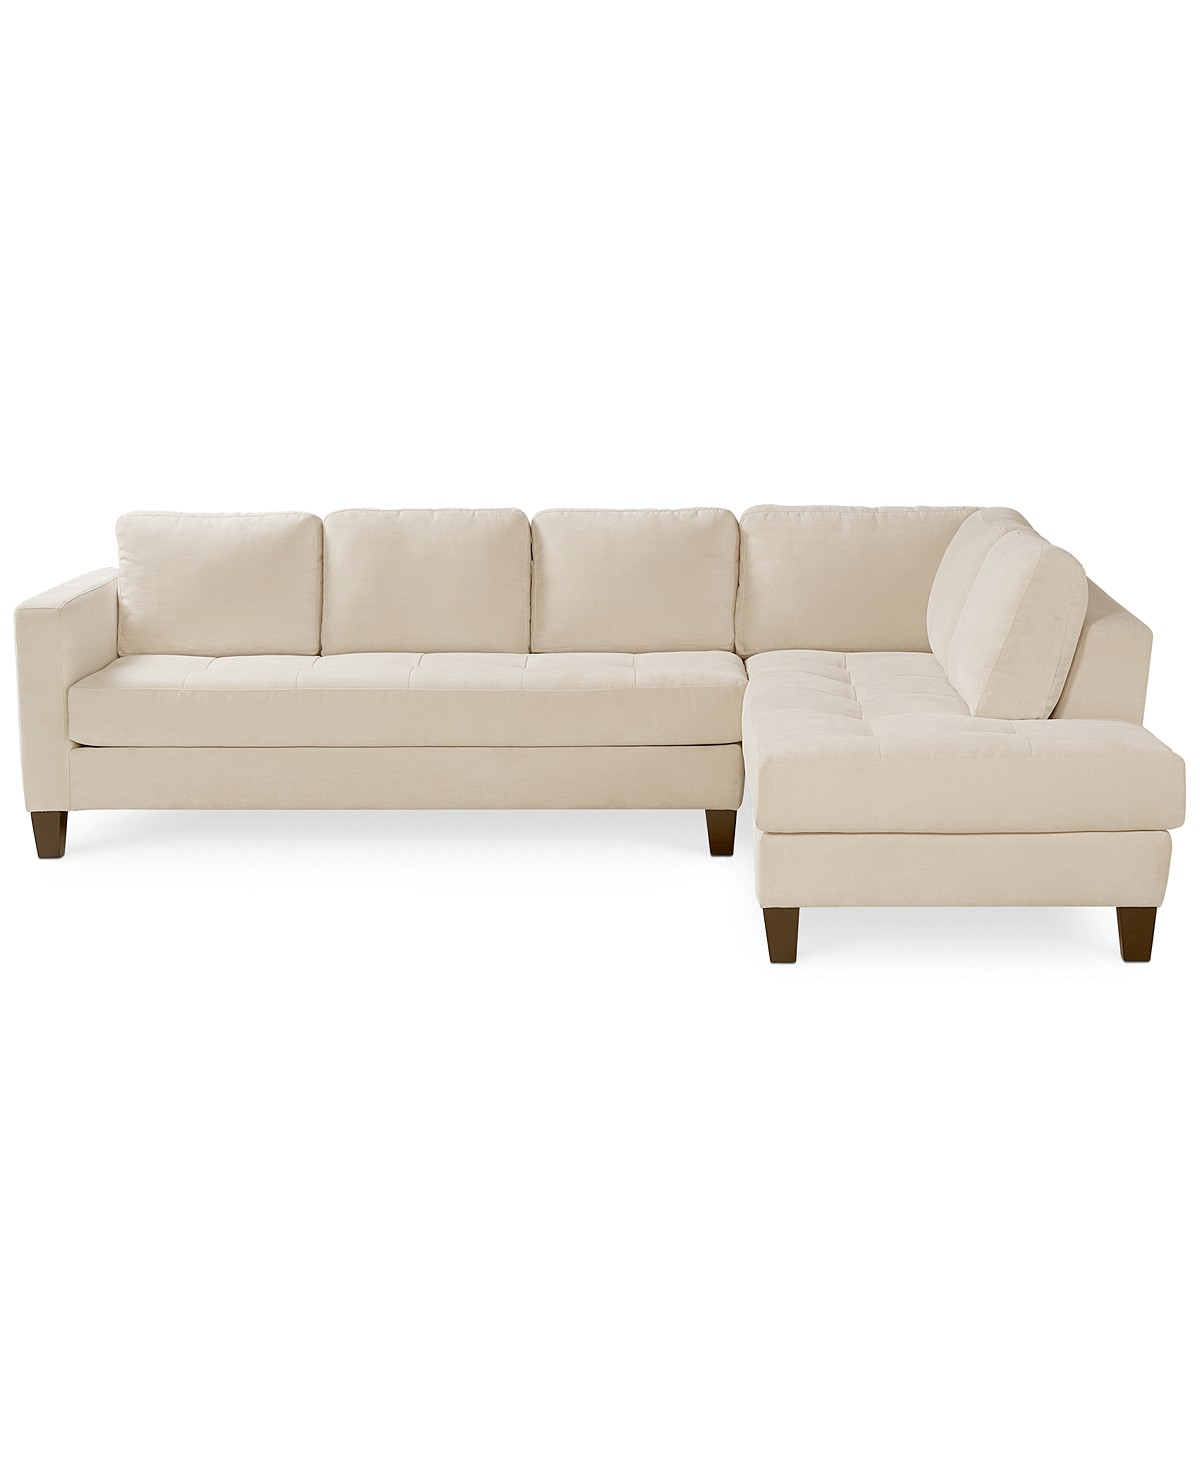 Miraculous Rylee Fabric 2 Piece Sectional Sofa Creativecarmelina Interior Chair Design Creativecarmelinacom